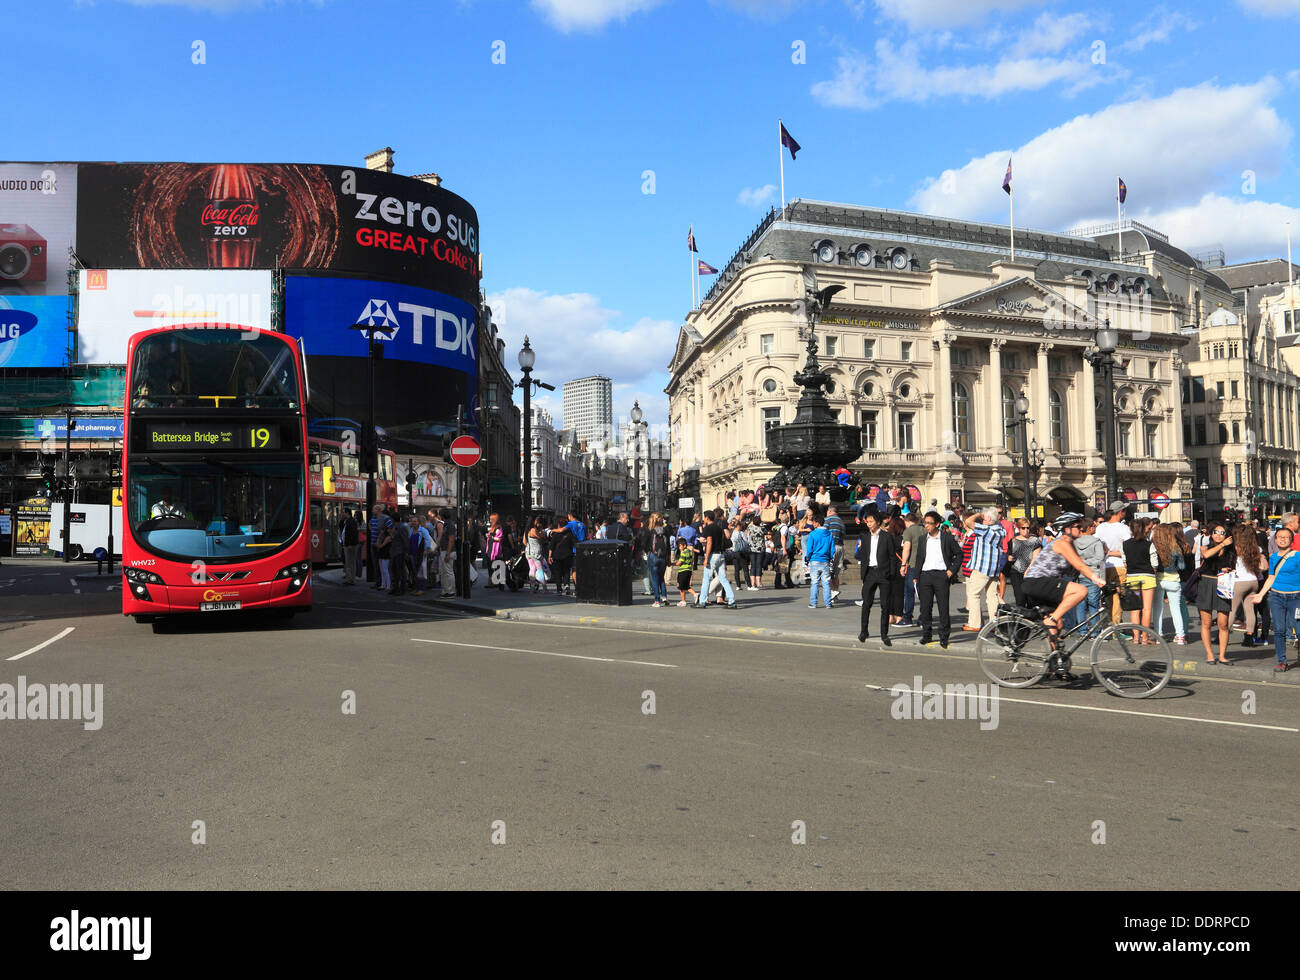 PIccadilly Circus with statue of Eros London - Stock Image